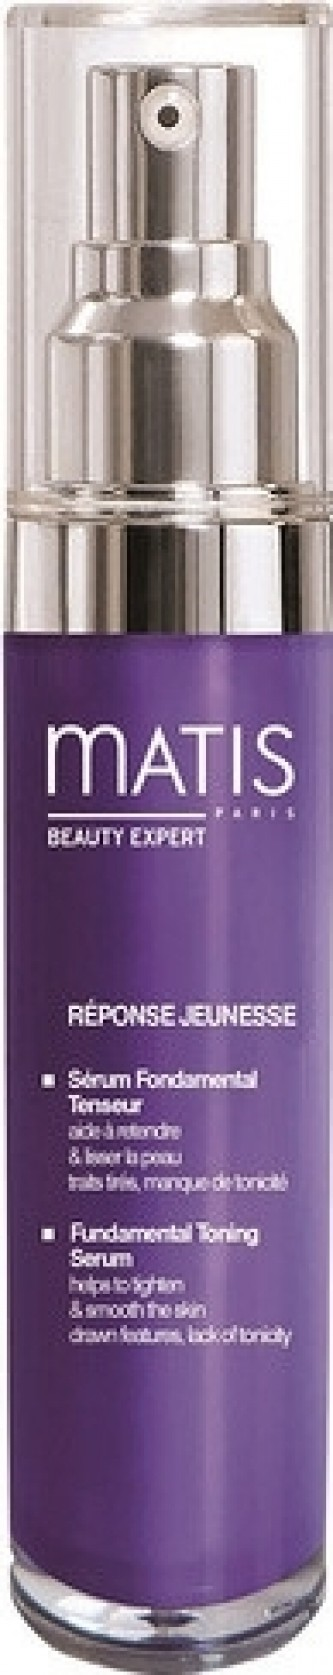 Matis Paris Zpevňující tonizační sérum Réponse Jeunesse (Fundamental Toning Serum) 30 ml